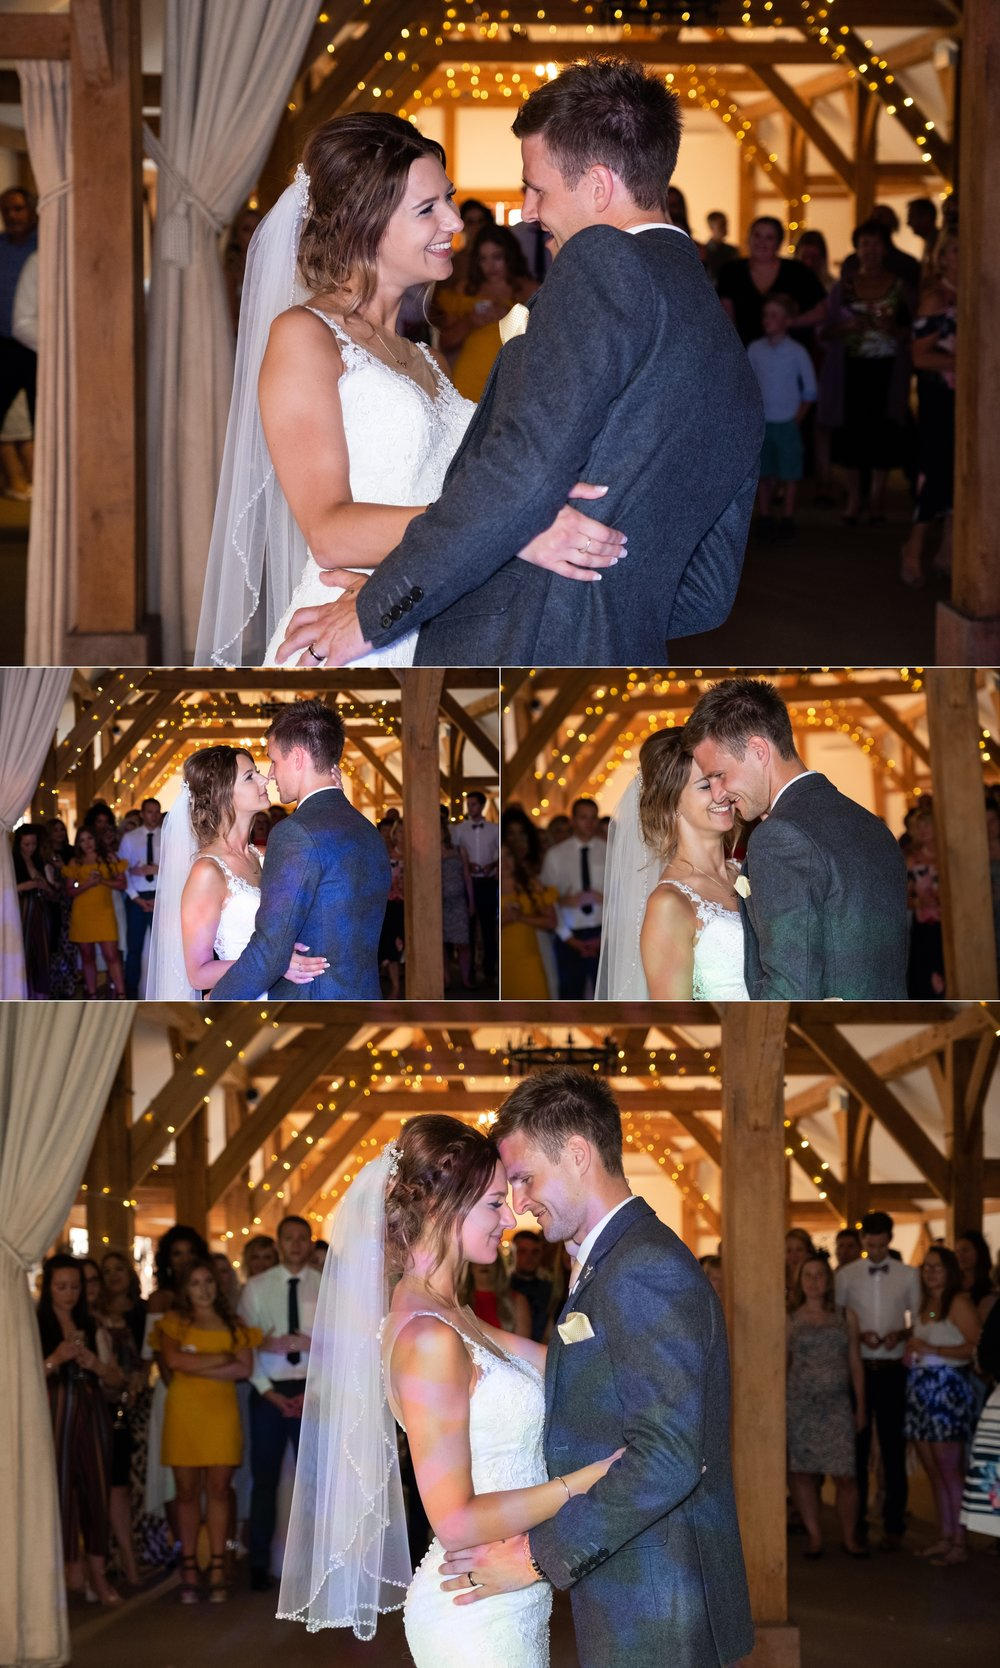 wedding photo sandhole oak barn 14.jpg